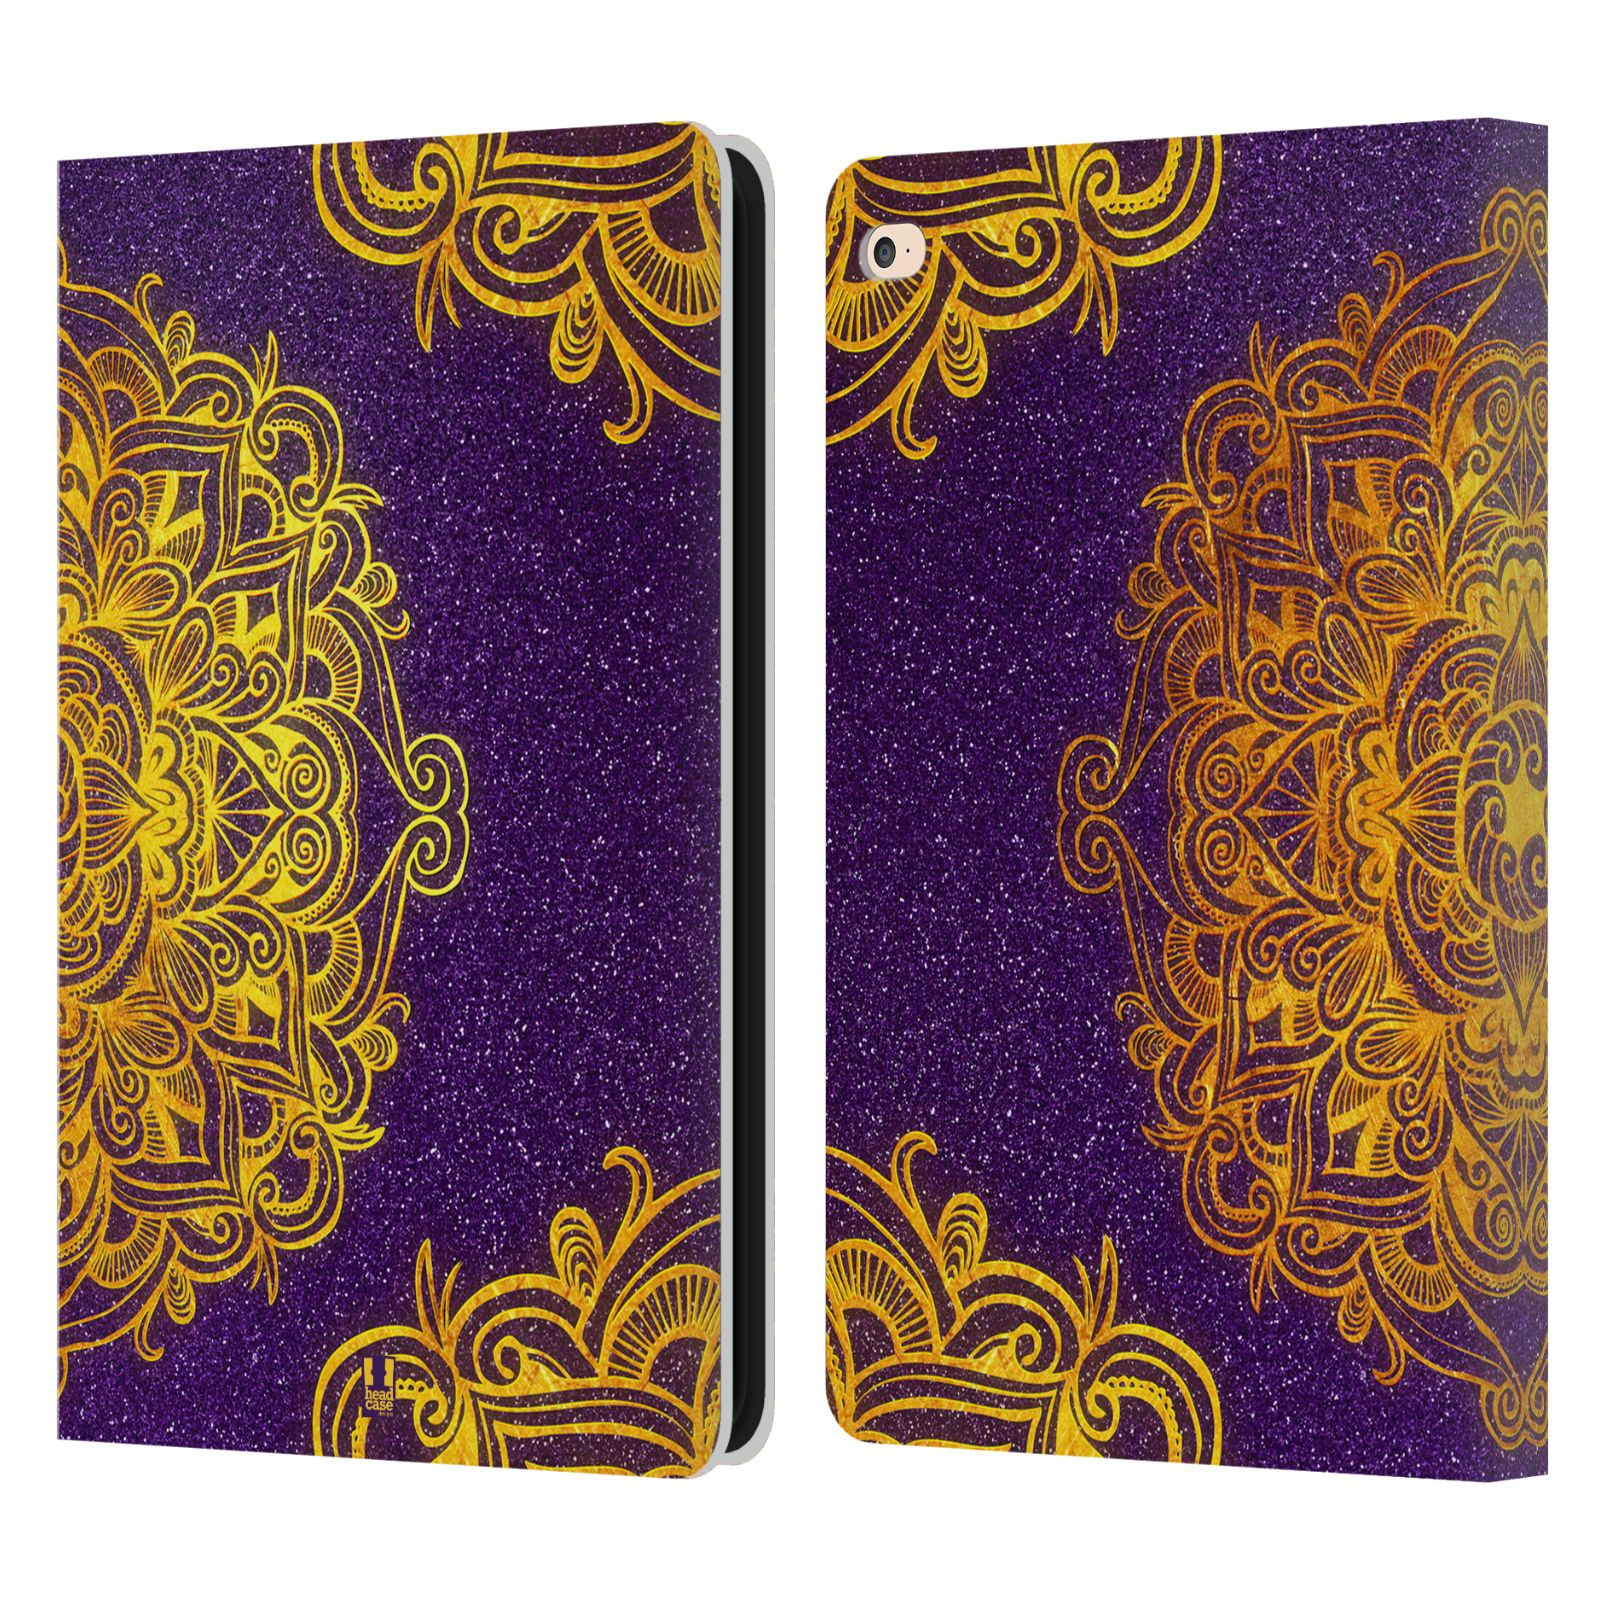 Leather Book Cover Ideas ~ Head case designs mandala doodles leather book wallet